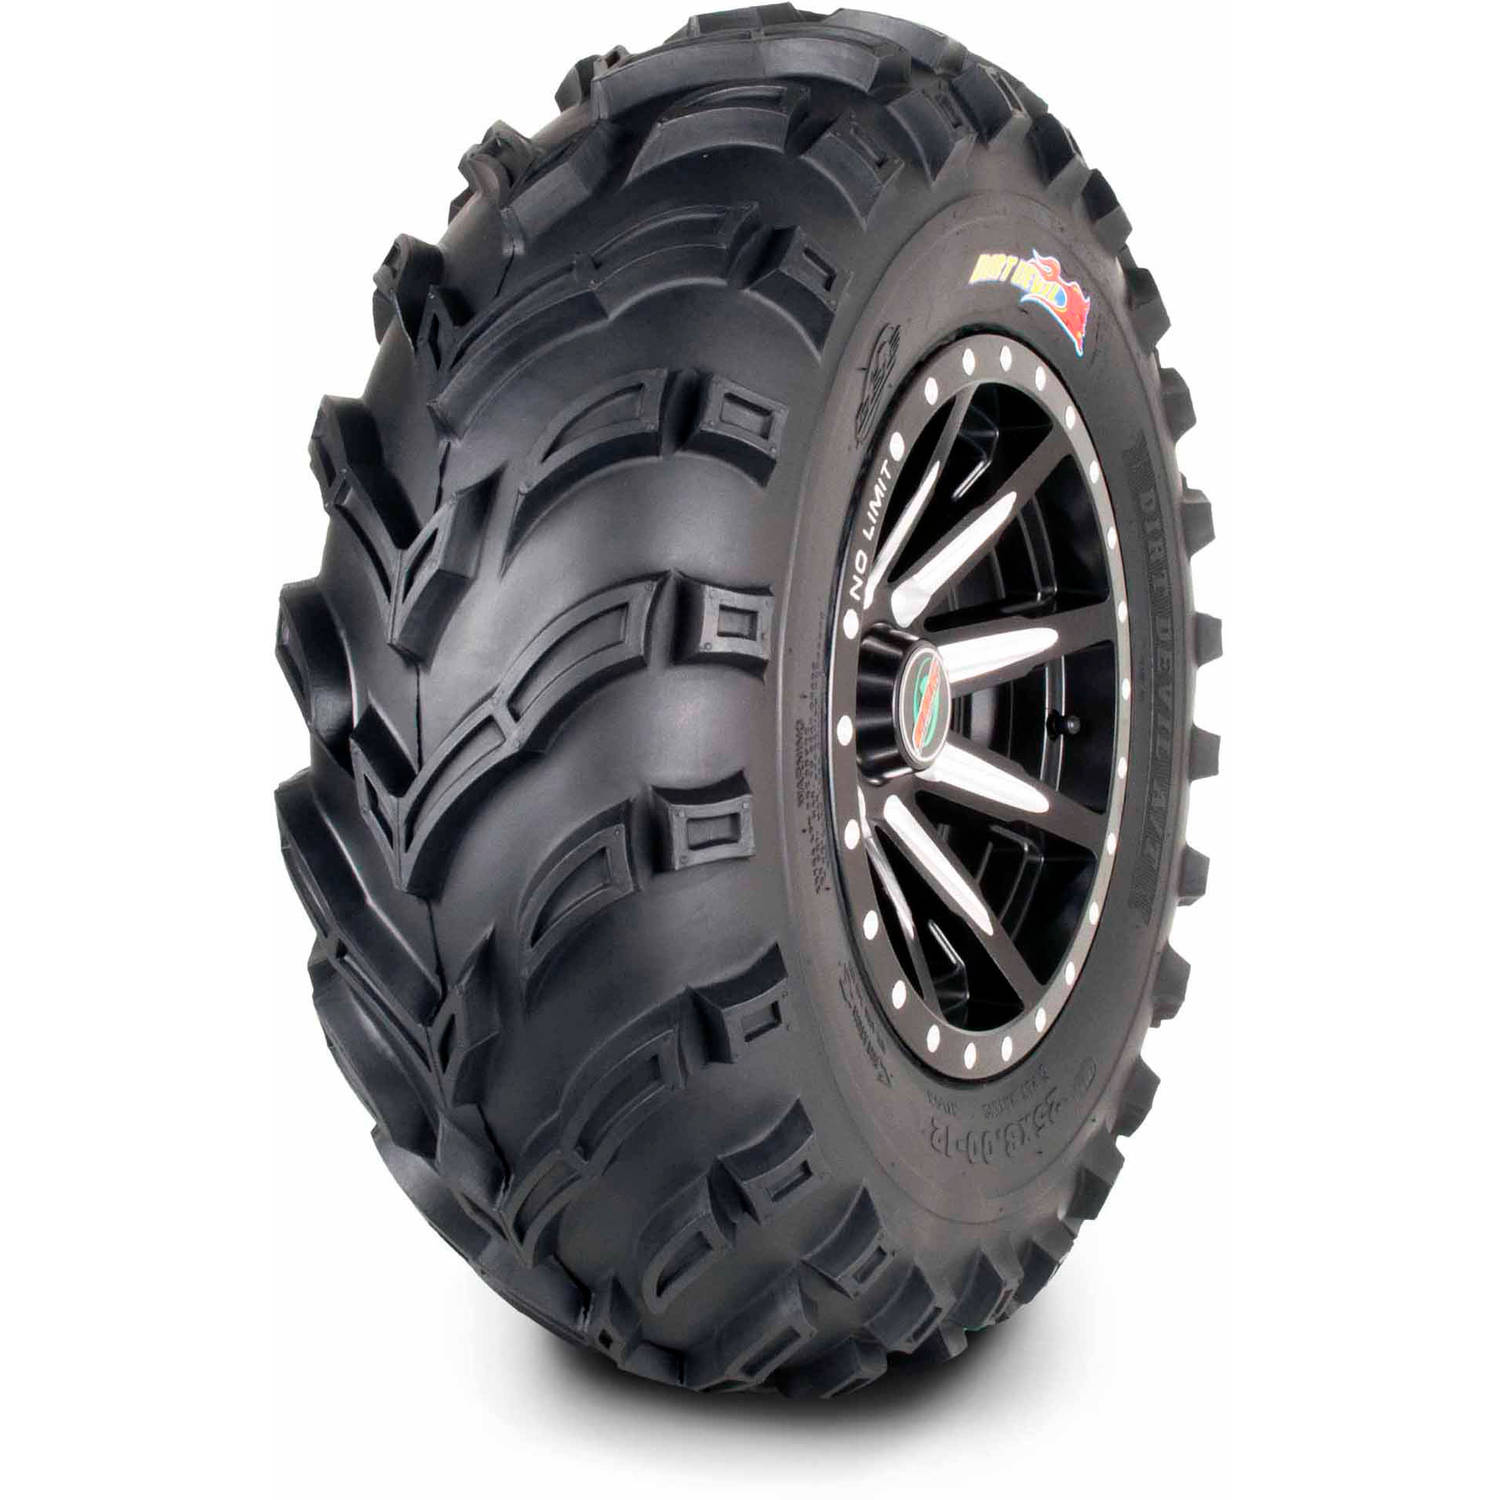 GBC Motorsports Dirt Devil 22X8.00-10 6 Ply ATV/UTV Tire (Tire Only)